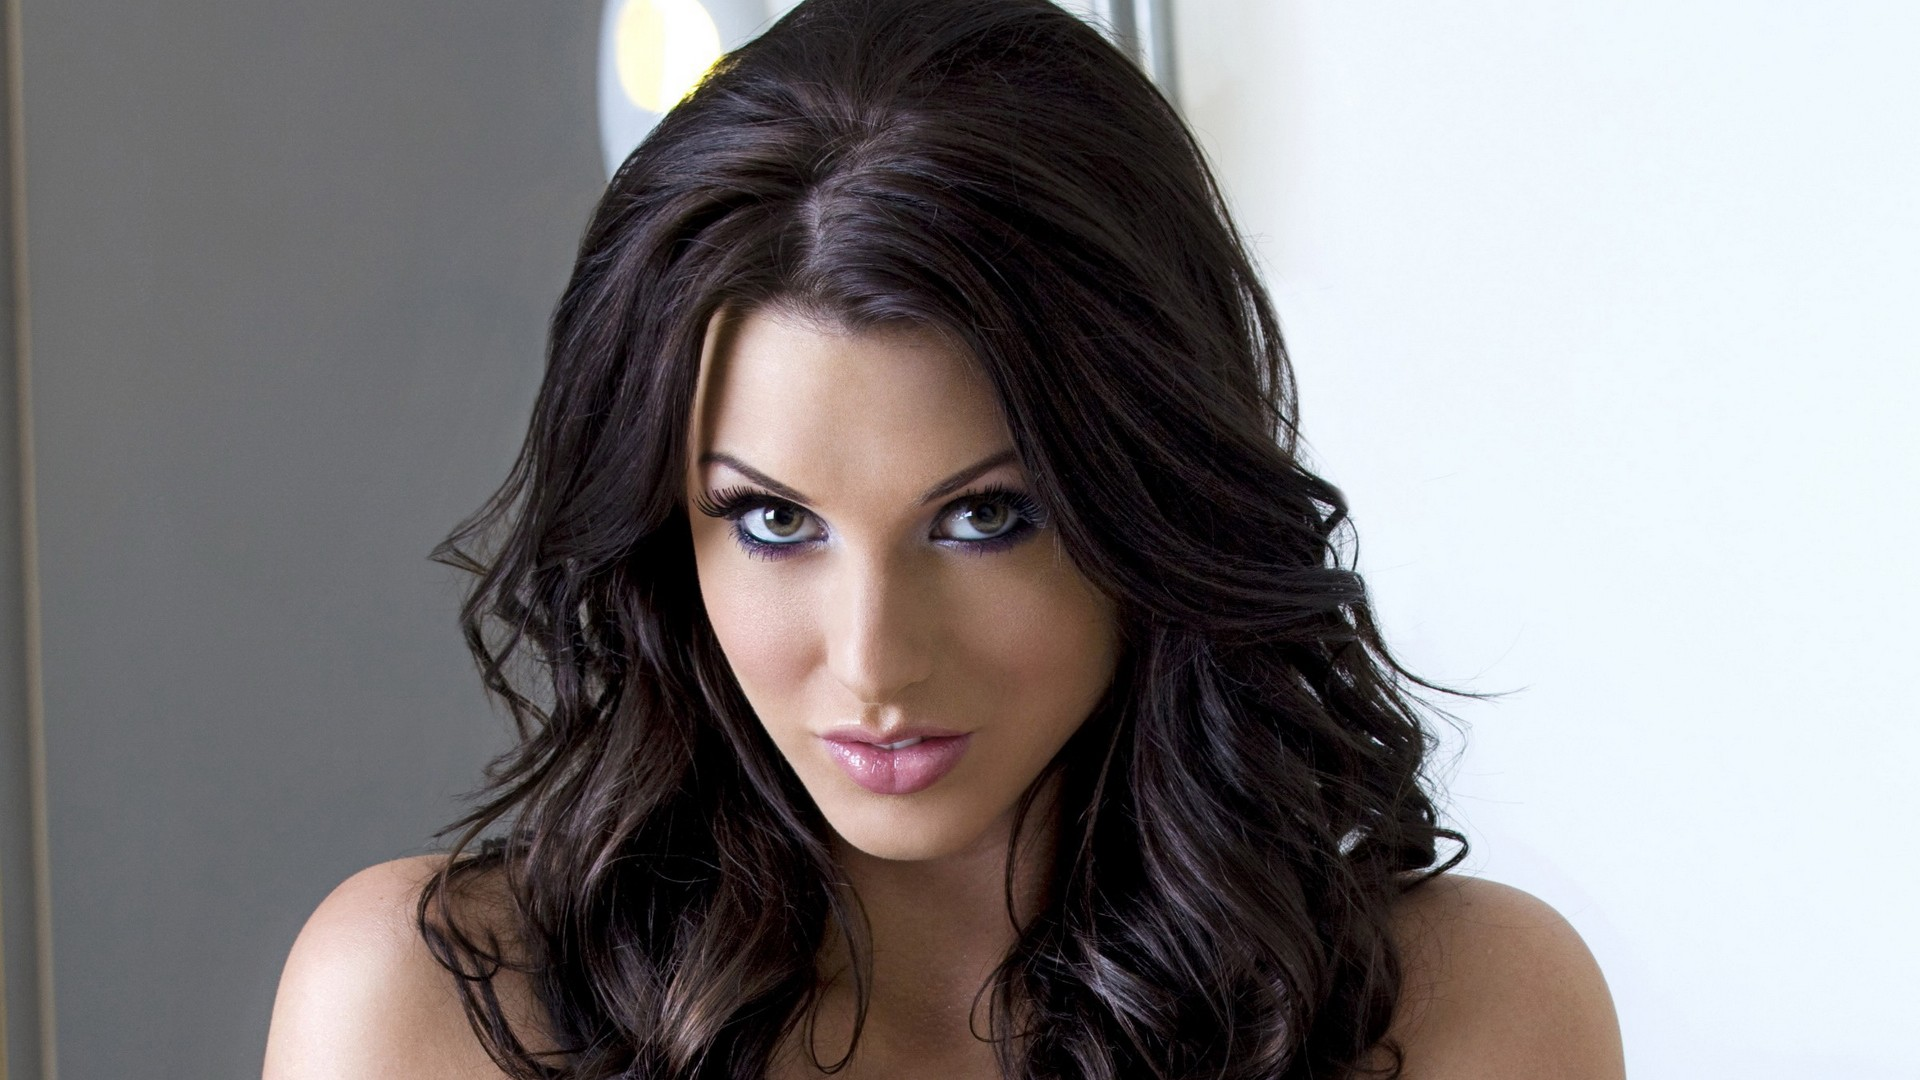 Photos Alice Goodwin nudes (11 photos), Topless, Cleavage, Twitter, cleavage 2015